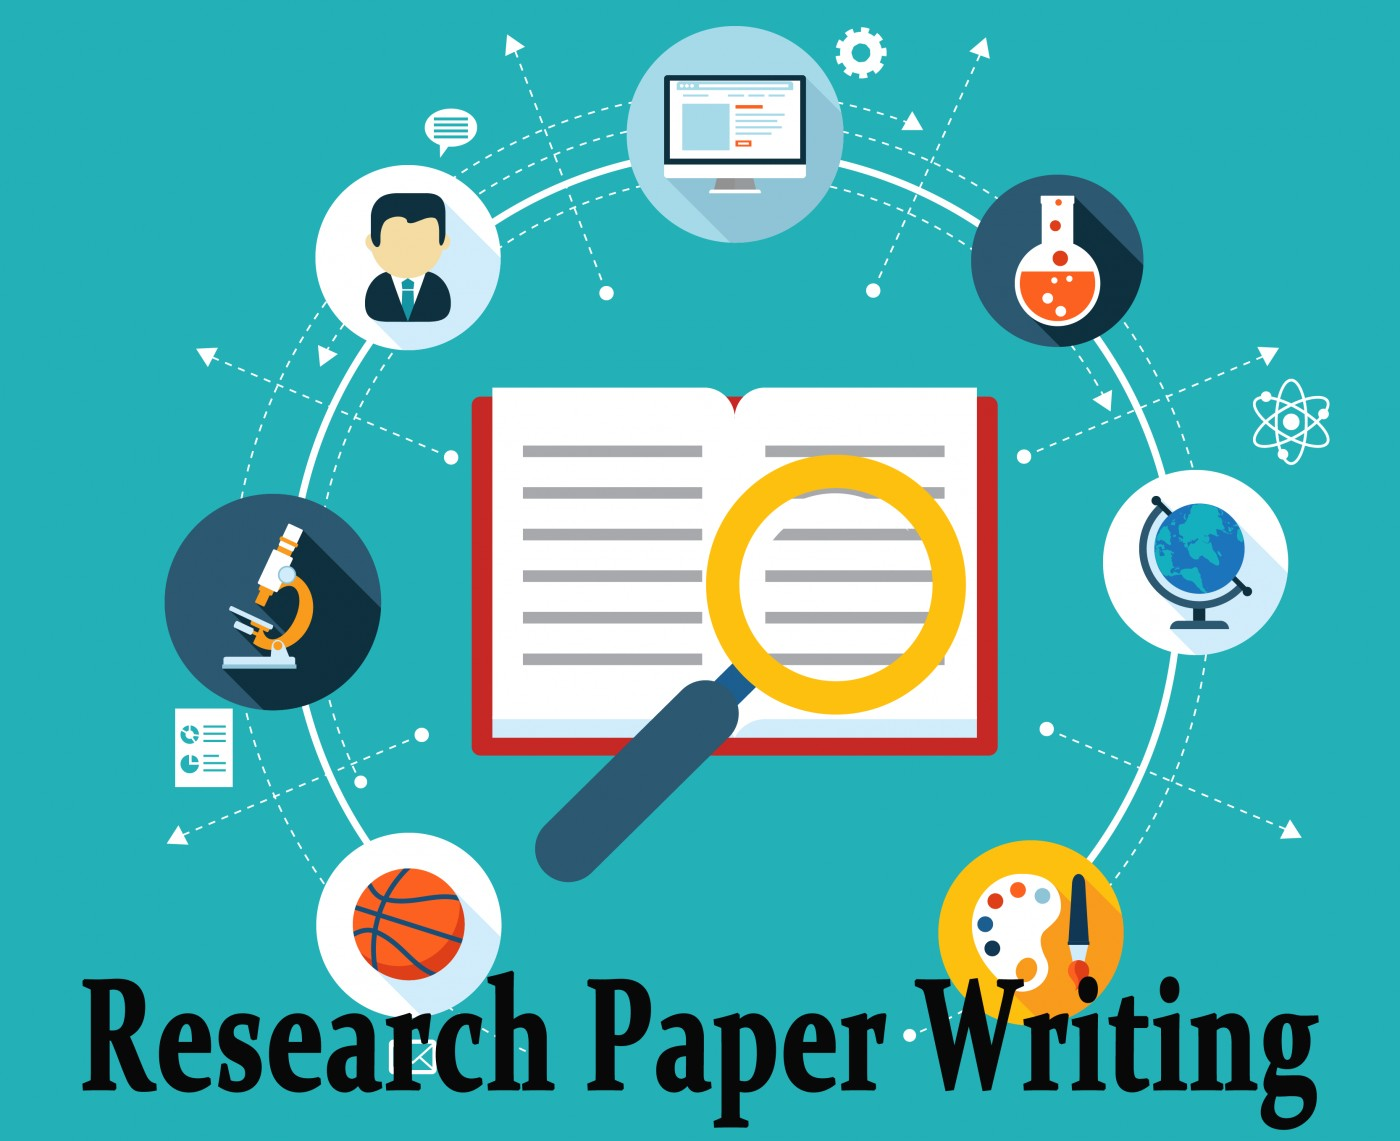 009 Writing The Research Paper 503 Effective Phenomenal How To Write A Outline Mla Papers Complete Guide 16th Edition Pdf Free 1400